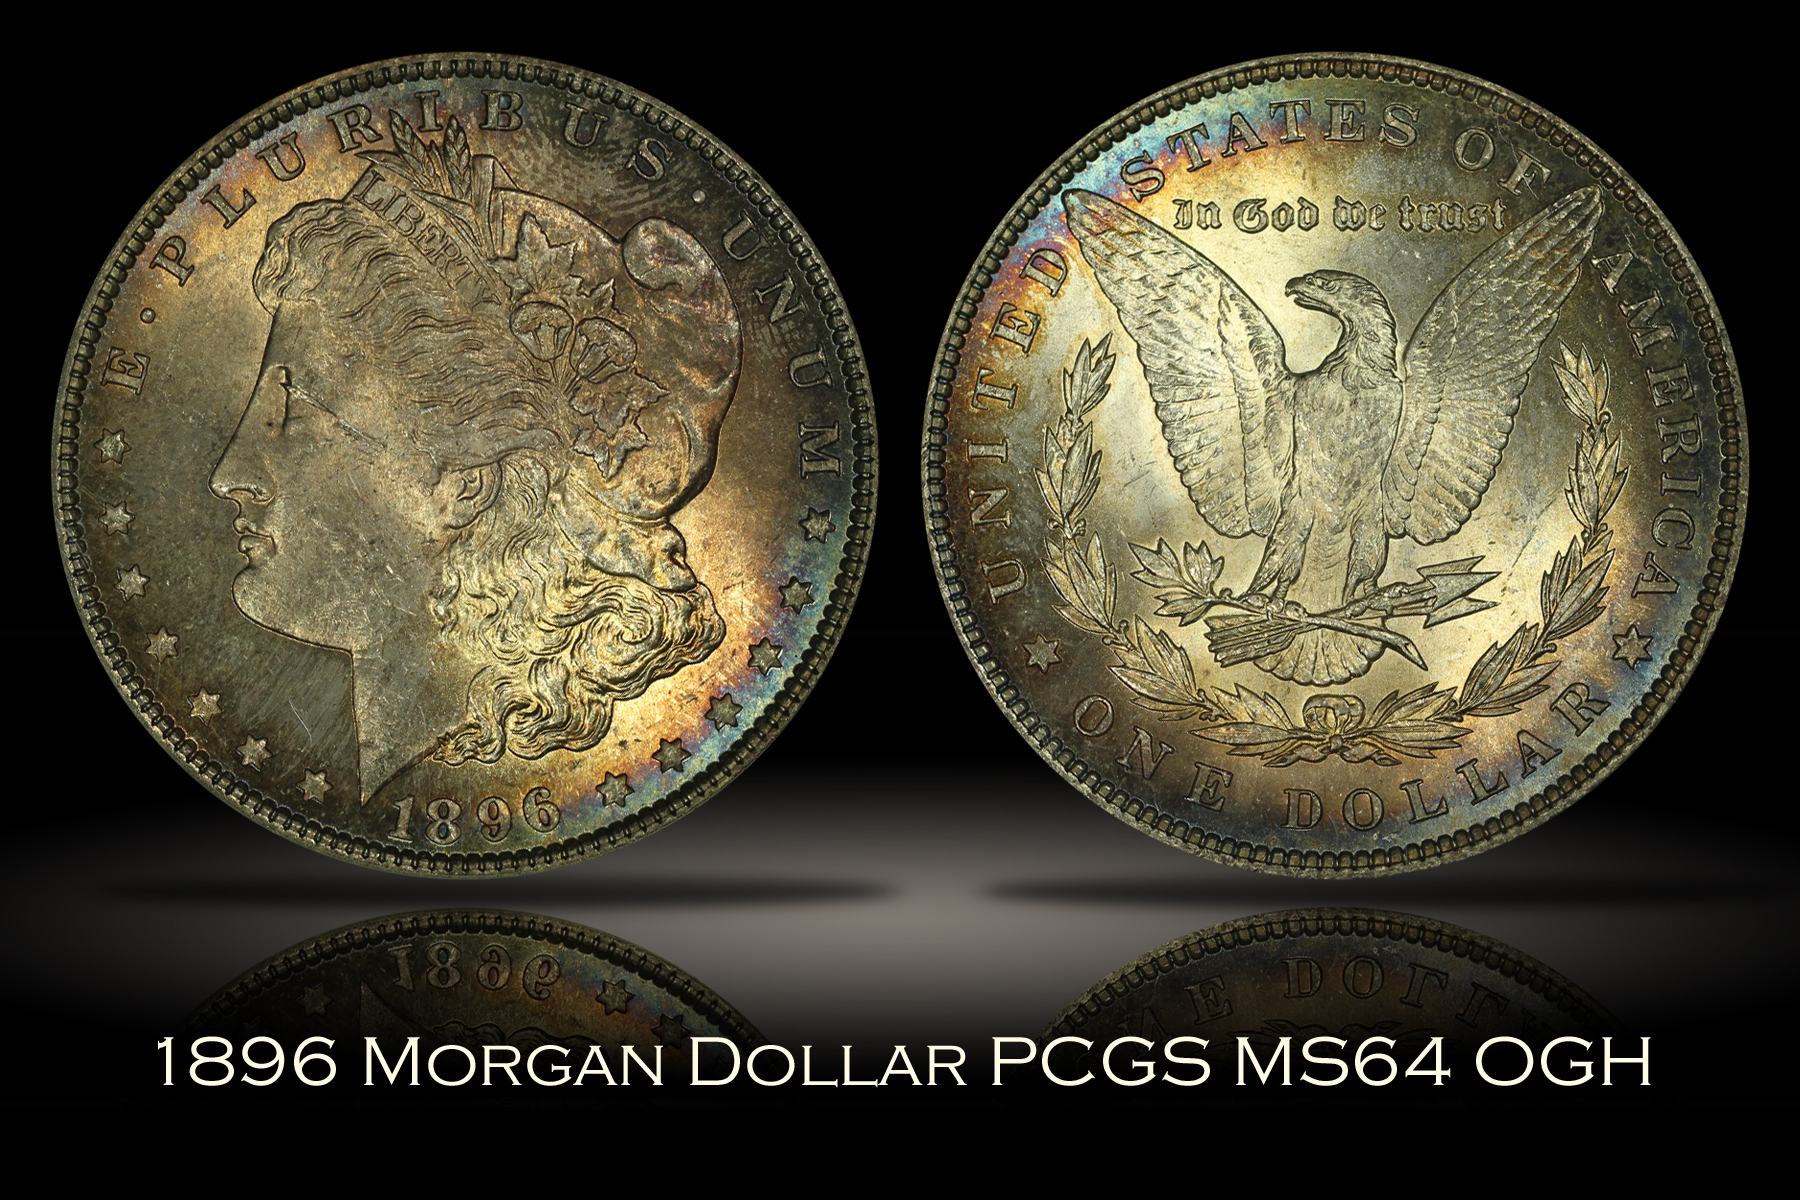 1896 Morgan Dollar PCGS MS64 OGH